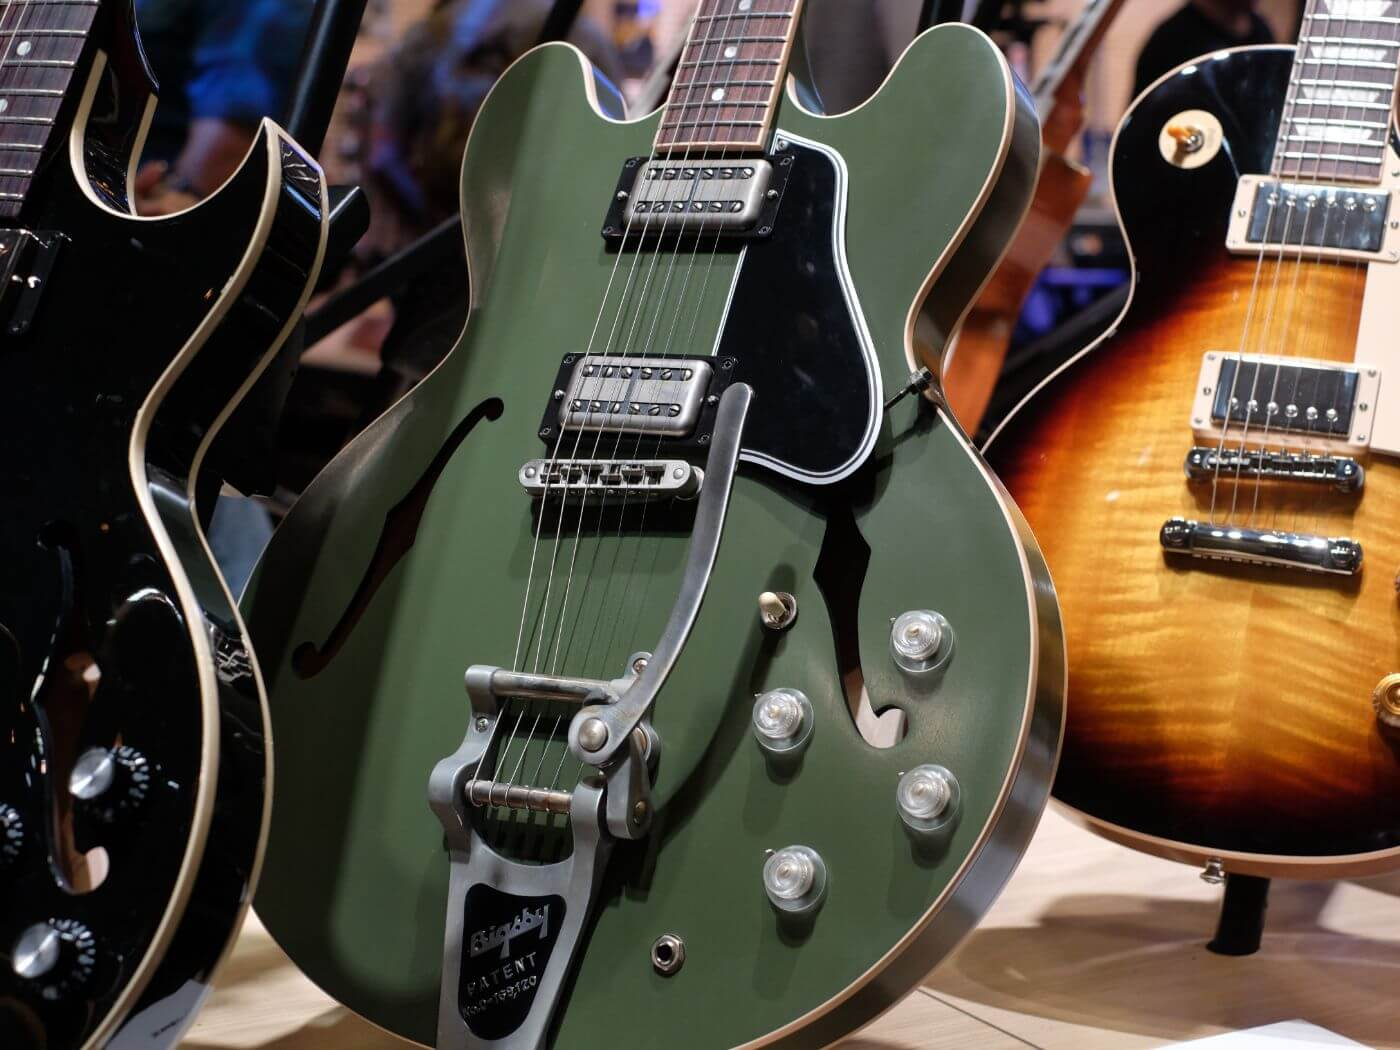 The Chris Cornell ES-335 Tribute gibson